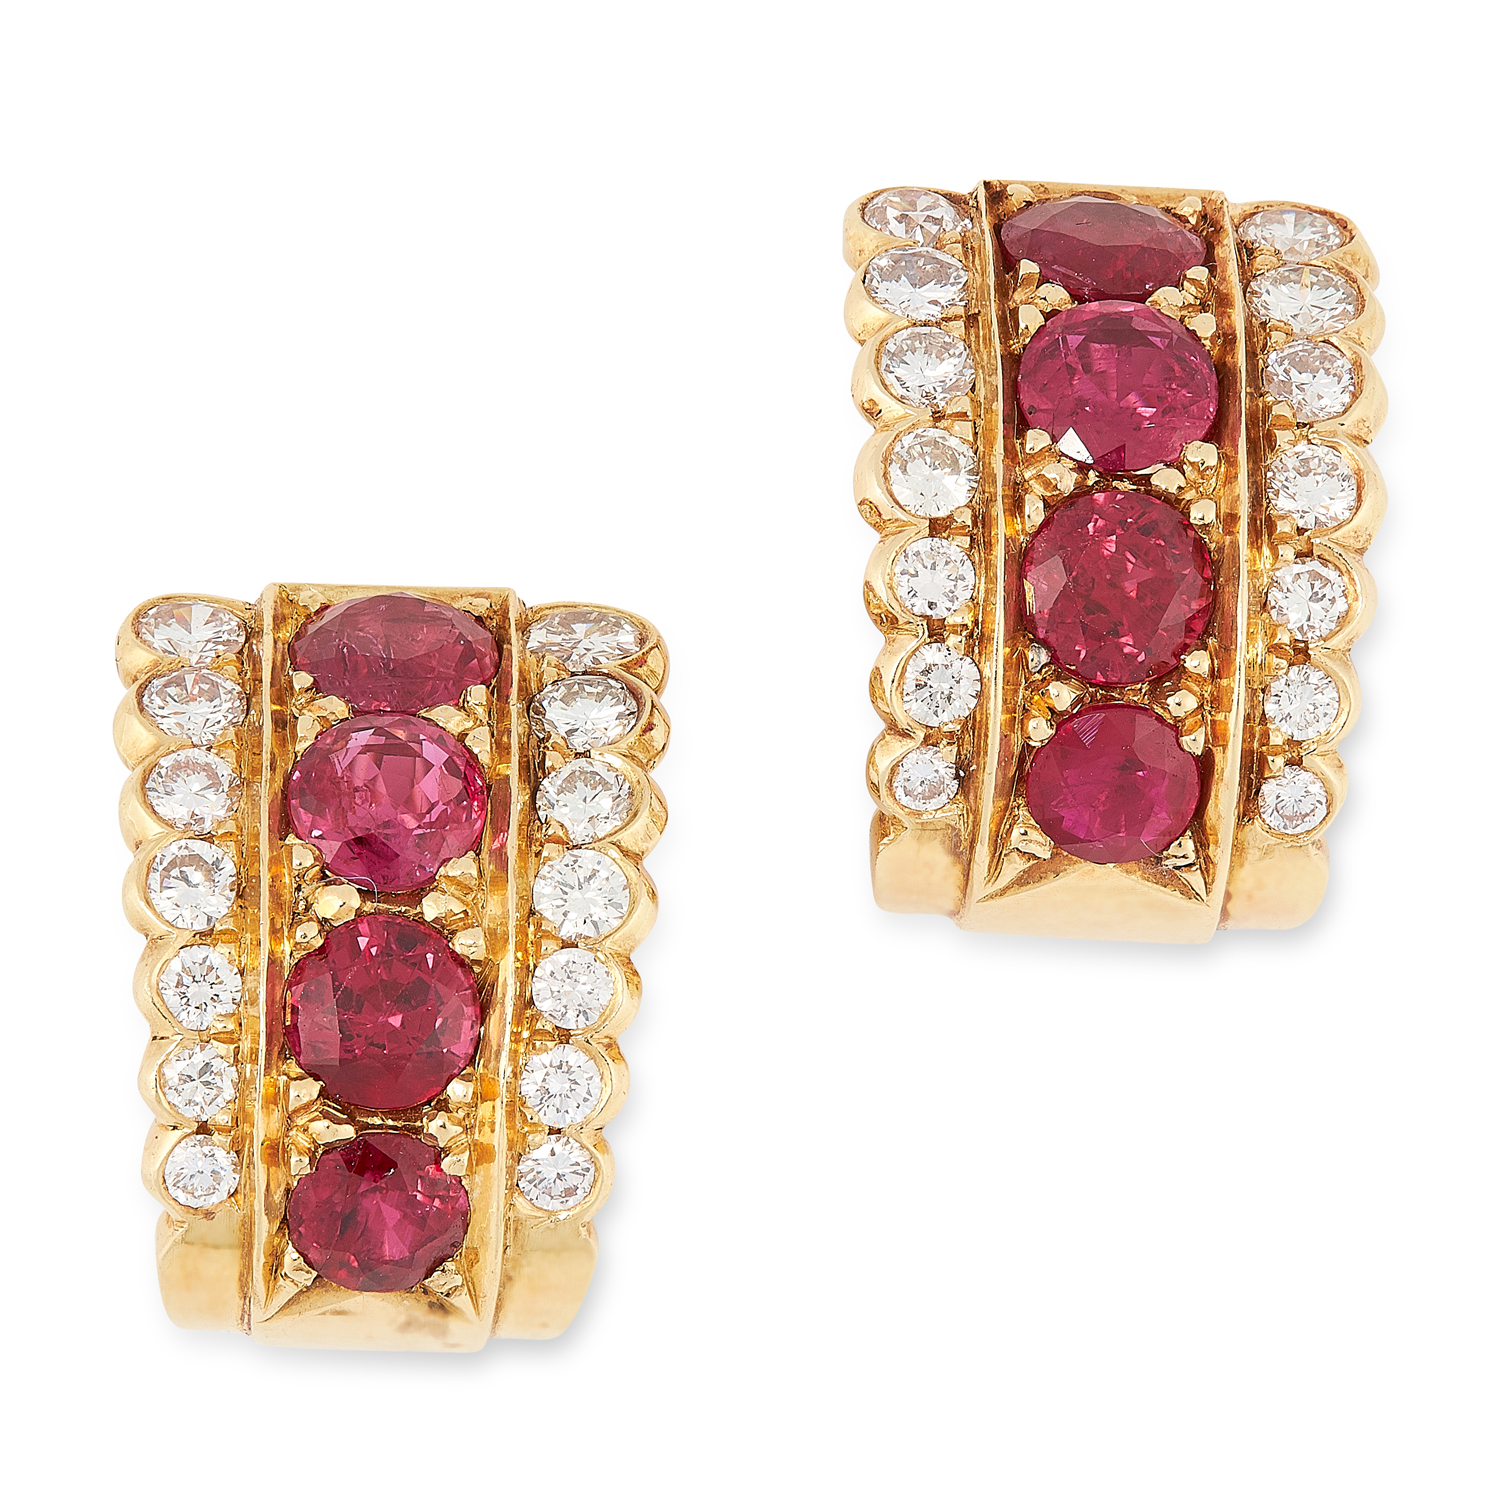 A PAIR OF RUBY AND DIAMOND HOOP EARRINGS each comprising of a row of round cut rubies totalling 3.